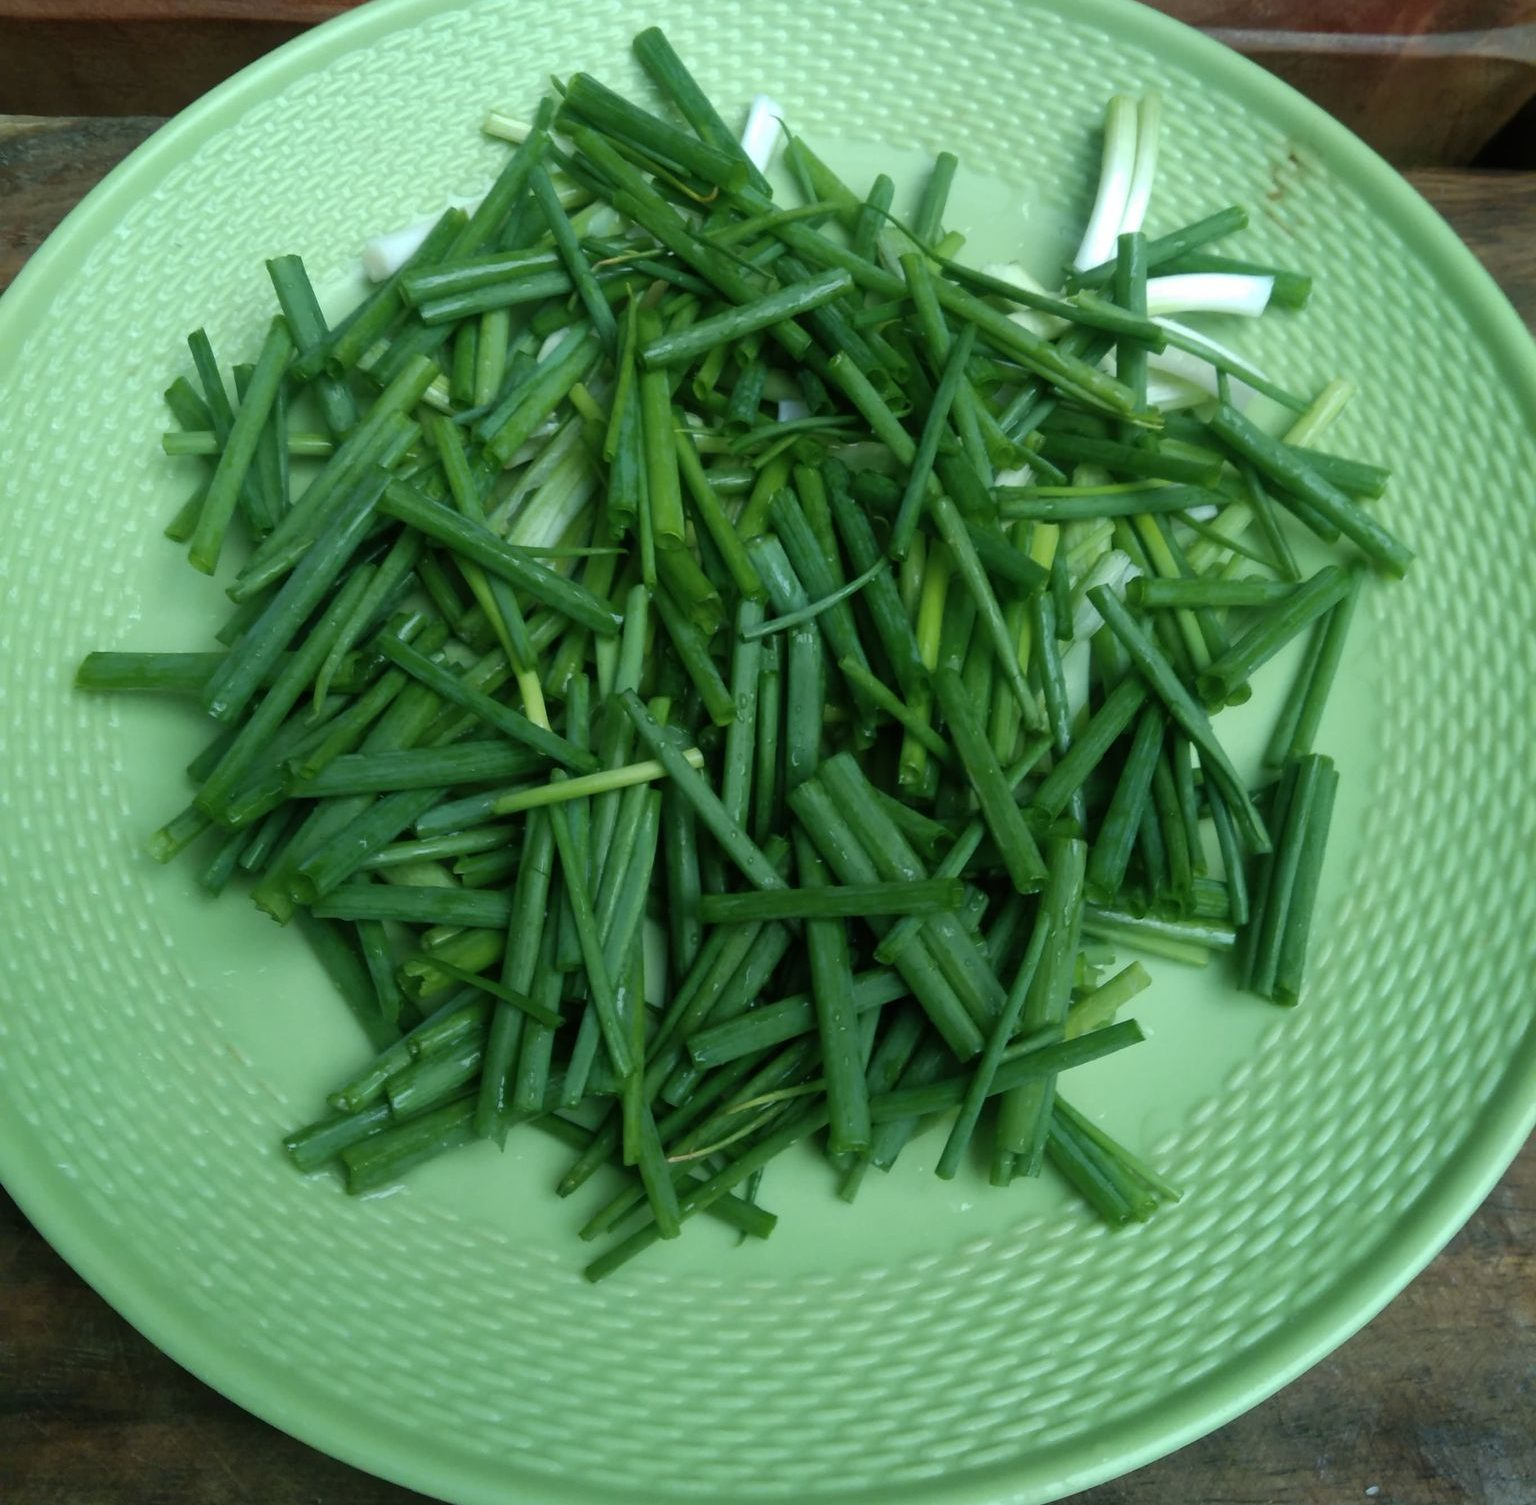 Chopped onion leaves on a green plate.